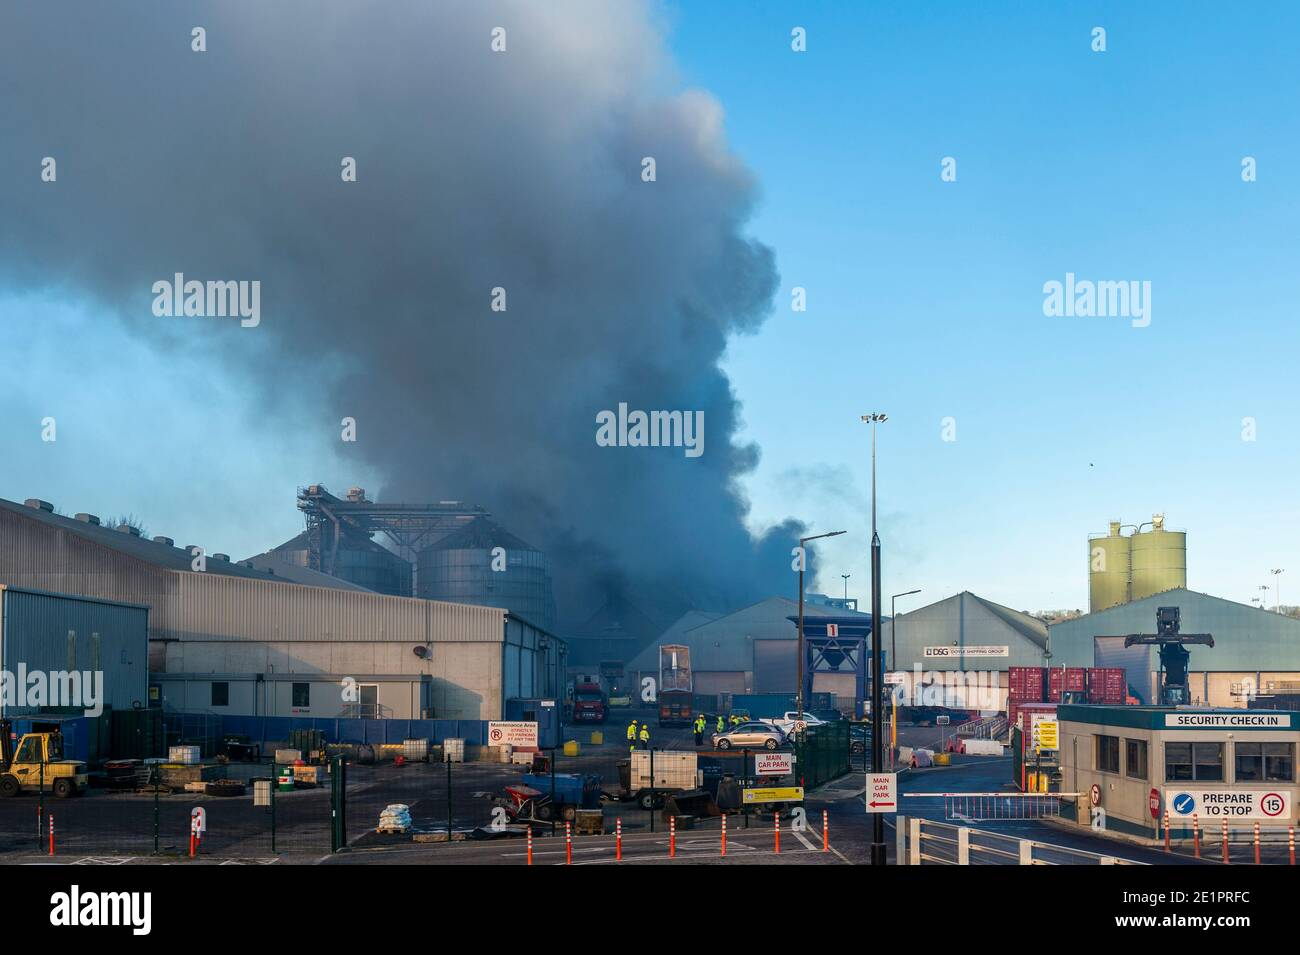 ringaskiddy-cork-ireland-9th-jan-2021-a-major-fire-in-the-port-of-cork-ringaskiddy-has-been-brought-under-control-the-fire-is-believed-to-have-started-in-an-animal-feed-facility-at-rh-hall-no-injuries-have-been-reported-credit-ag-newsalamy-live-news-2E1PRFC.jpg